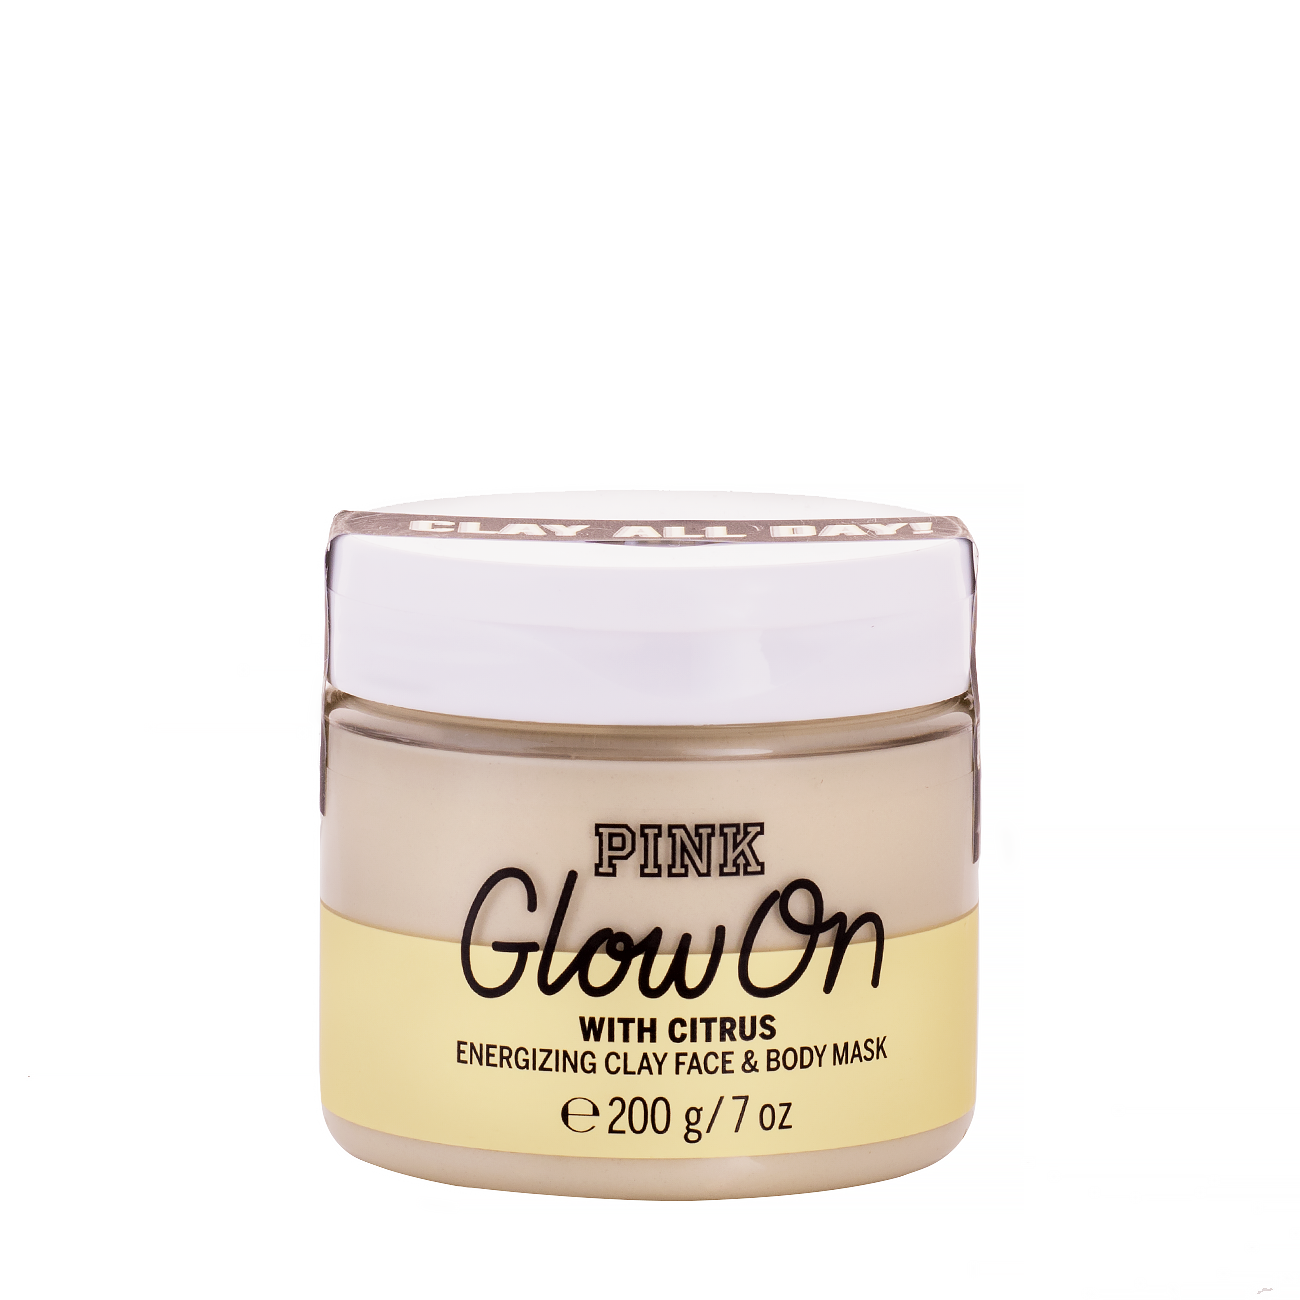 PINK GLOW ON ENERGIZING CLAY FACE & BODY MASK 200gr